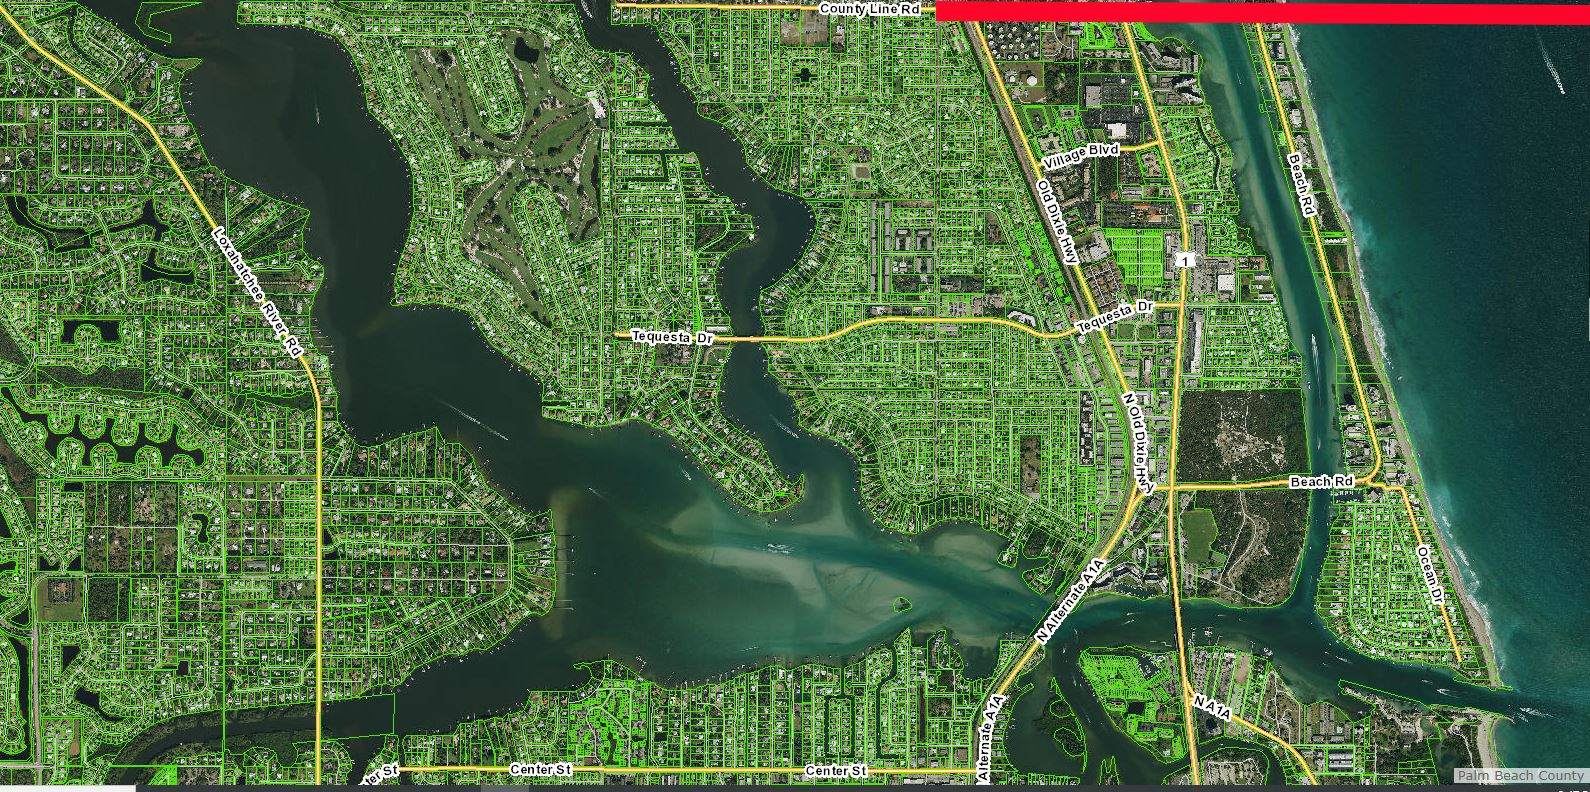 Palm Beach County Waterway Boundary